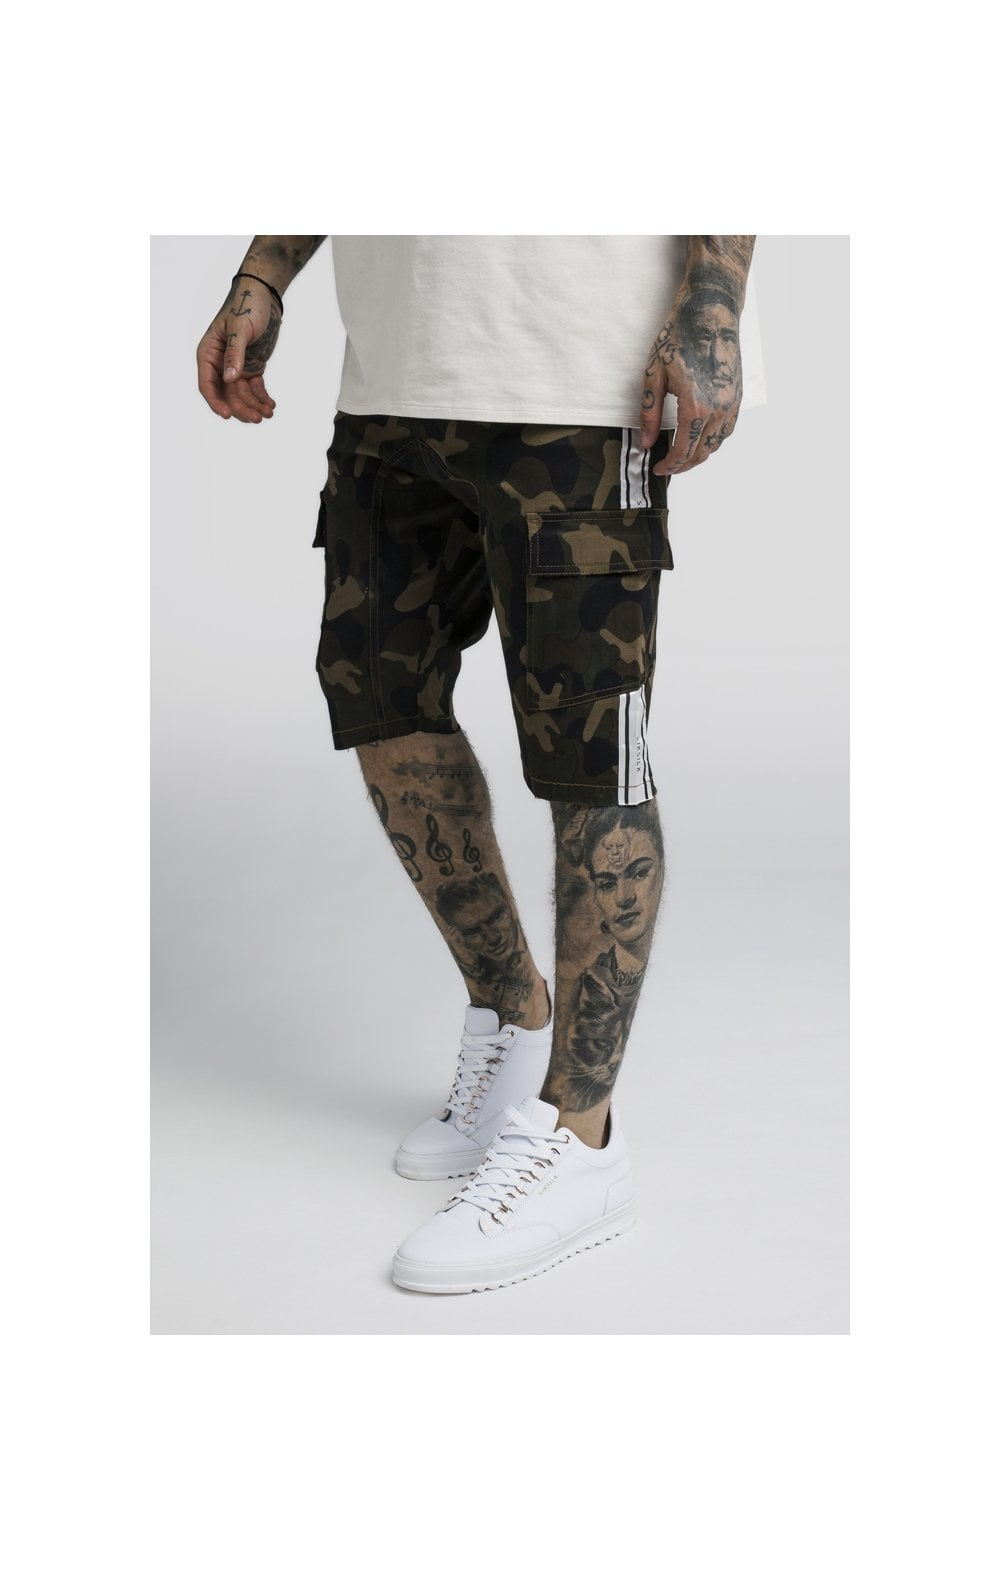 Load image into Gallery viewer, SikSilk Taped Cargo Shorts - Camo